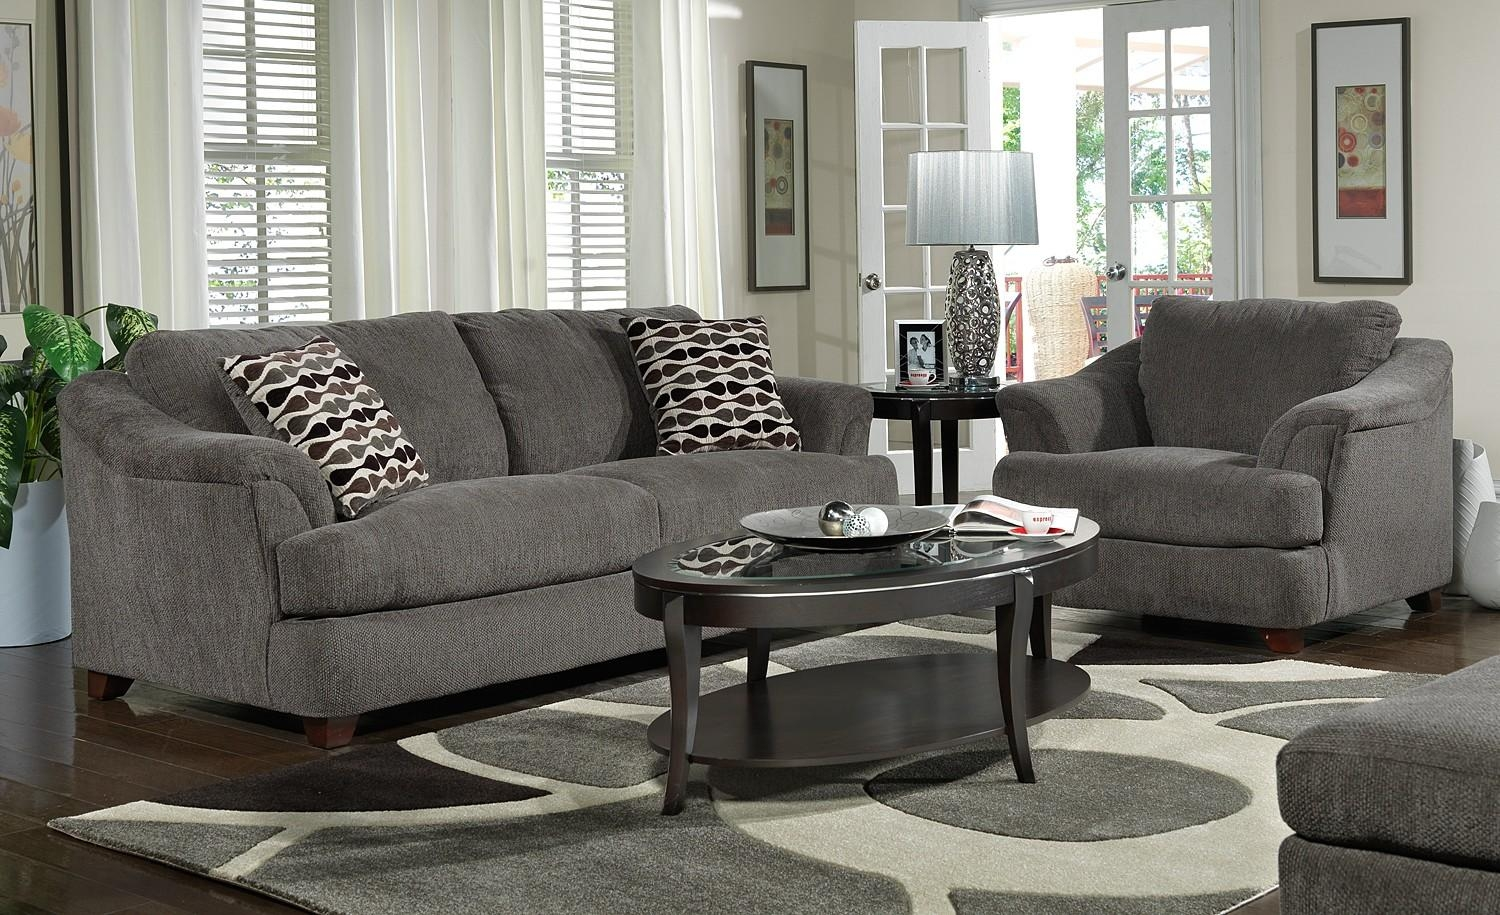 Dark Grey Living Room Furniture With Gray Sofa And Wooden Gray Within Grey Sofa Chairs (Image 4 of 20)